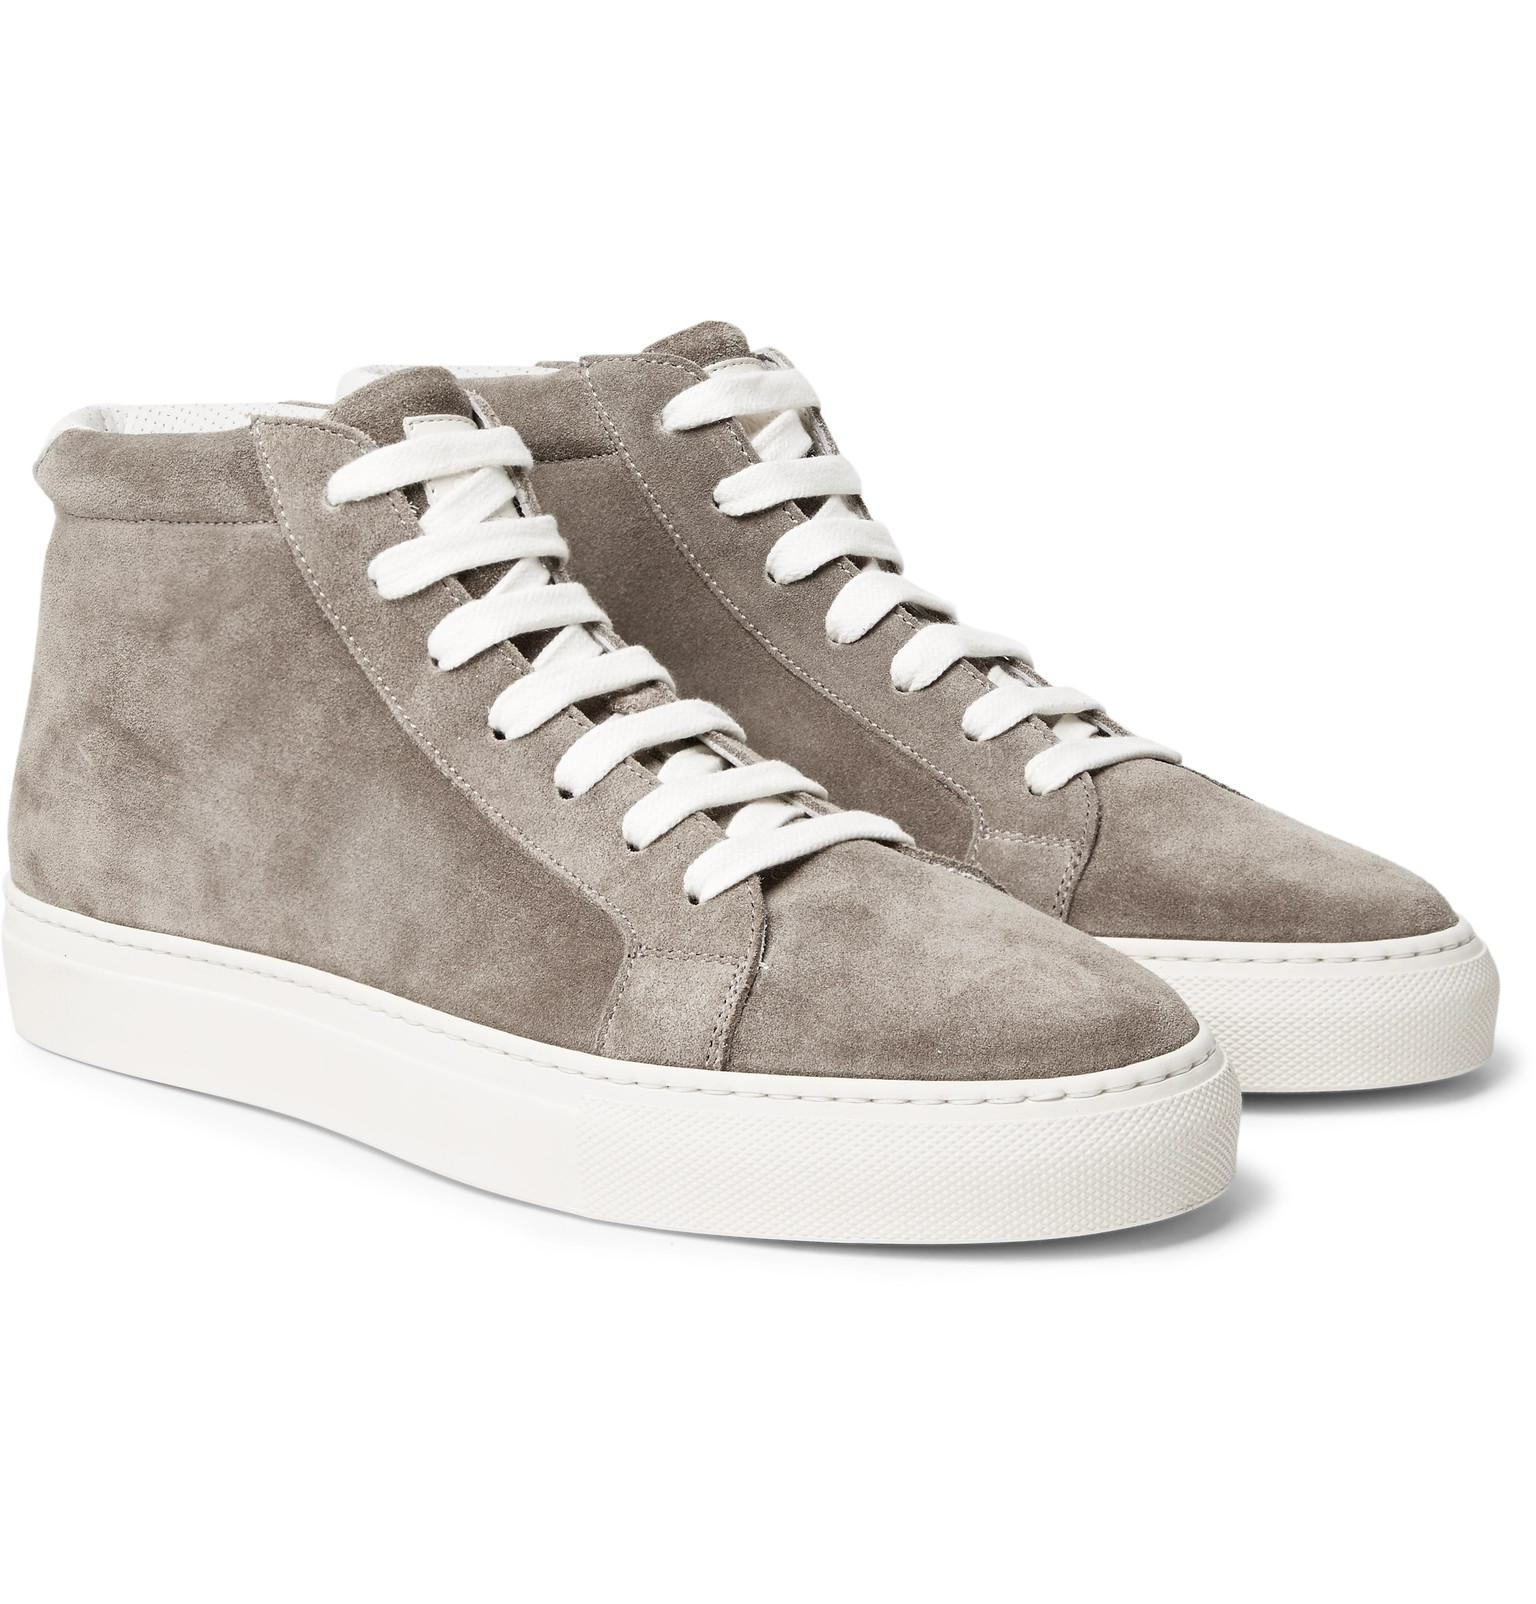 Nubuck High-top Sneakers Brunello Cucinelli rlES9S7JZ